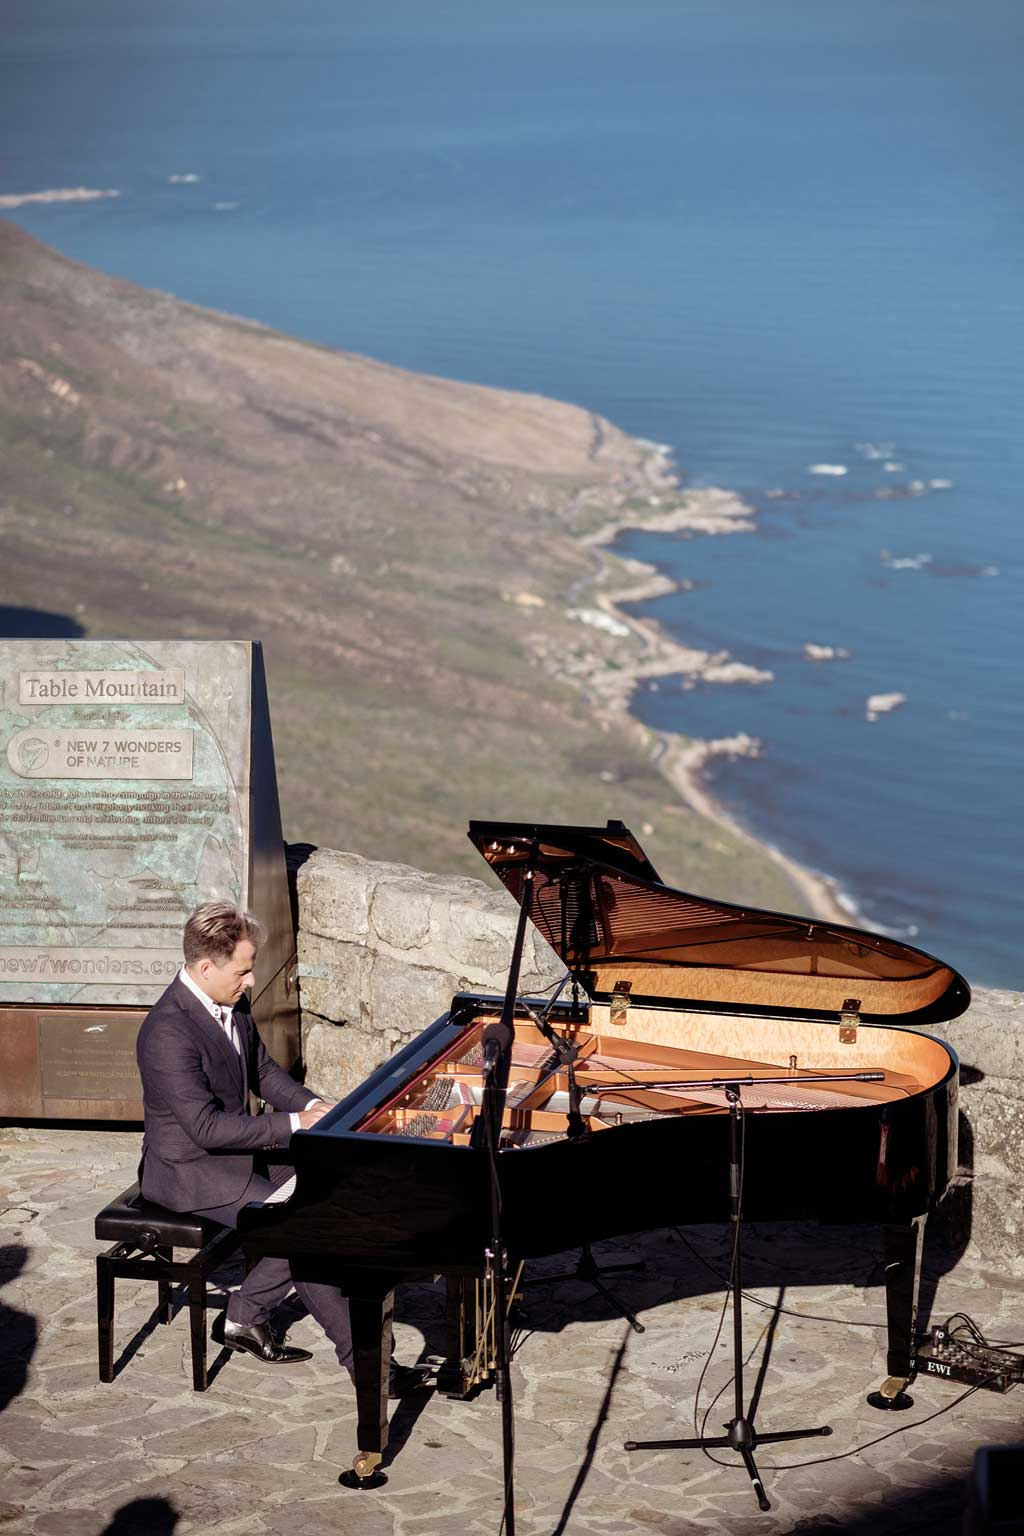 With the New7Wonder of Nature commemorative plaque in the background, Charl du Plessis serenades Table Mountain